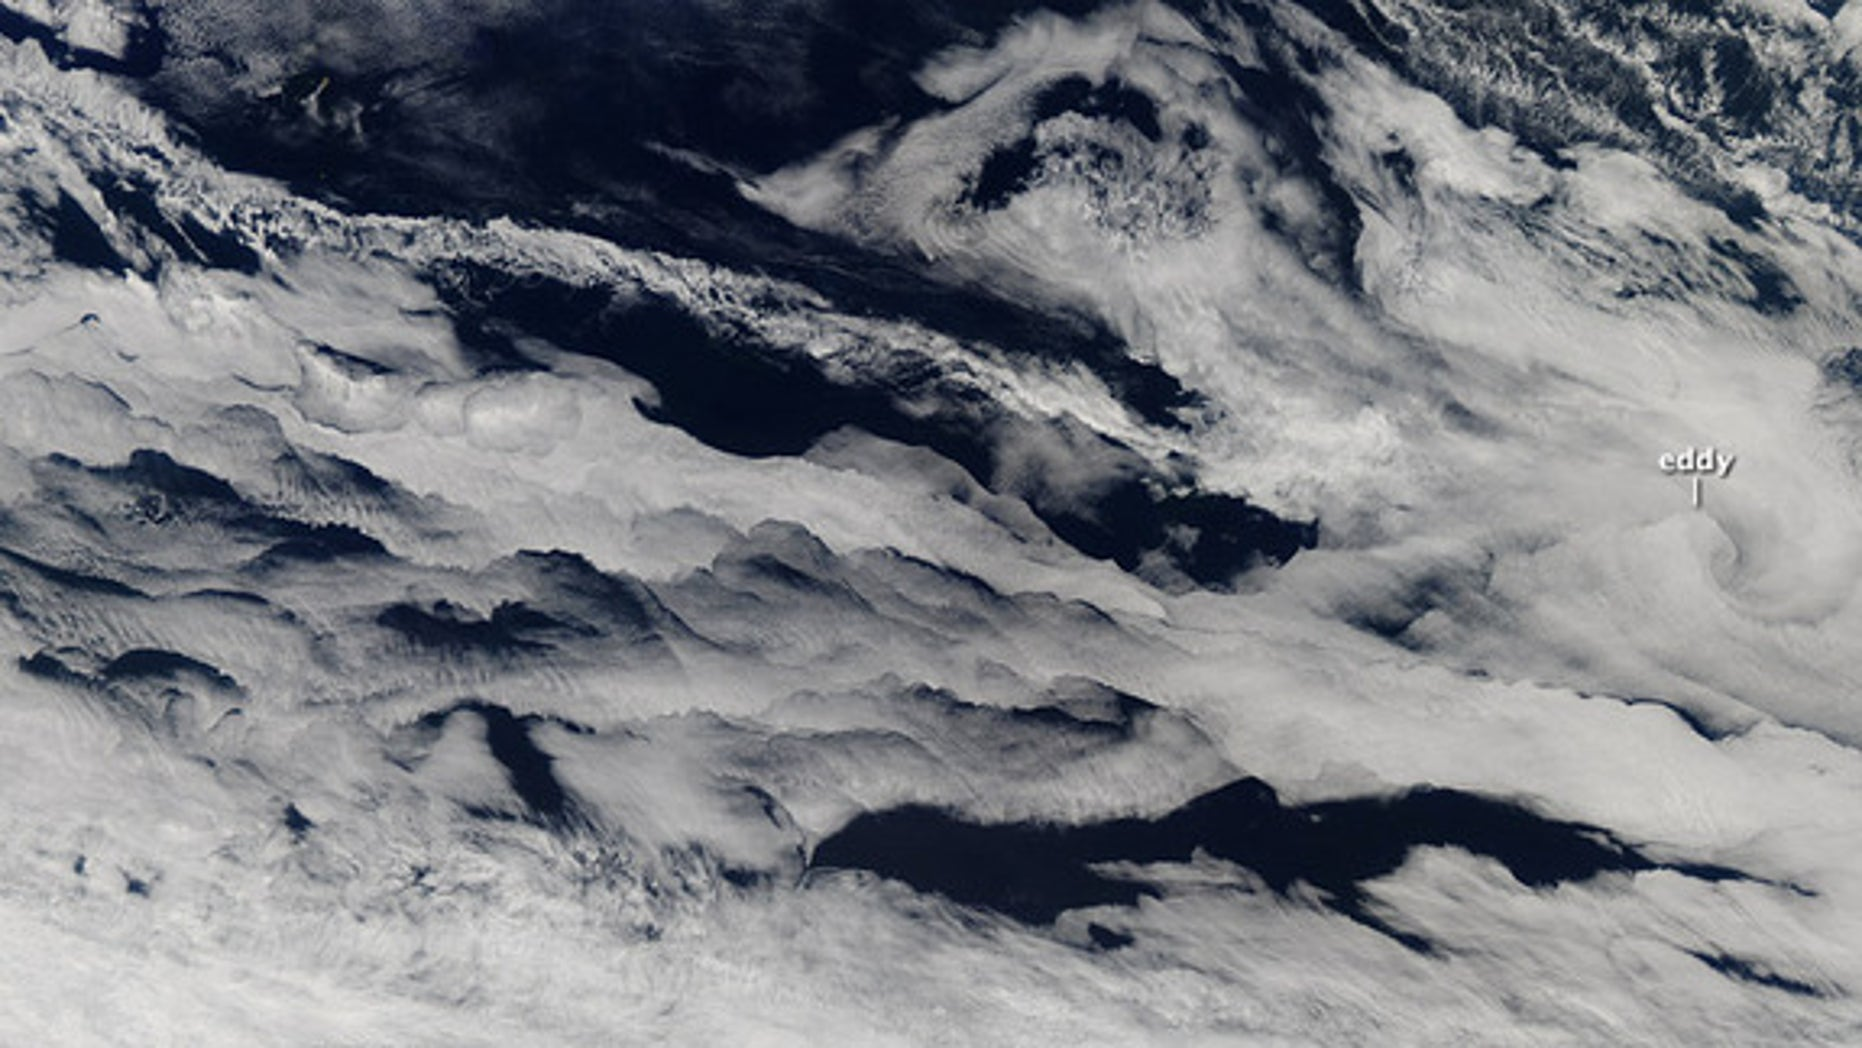 Marine stratocumulus clouds stretched across the southern Indian Ocean in this image taken by NASA's Aqua satellite in early March 2013.